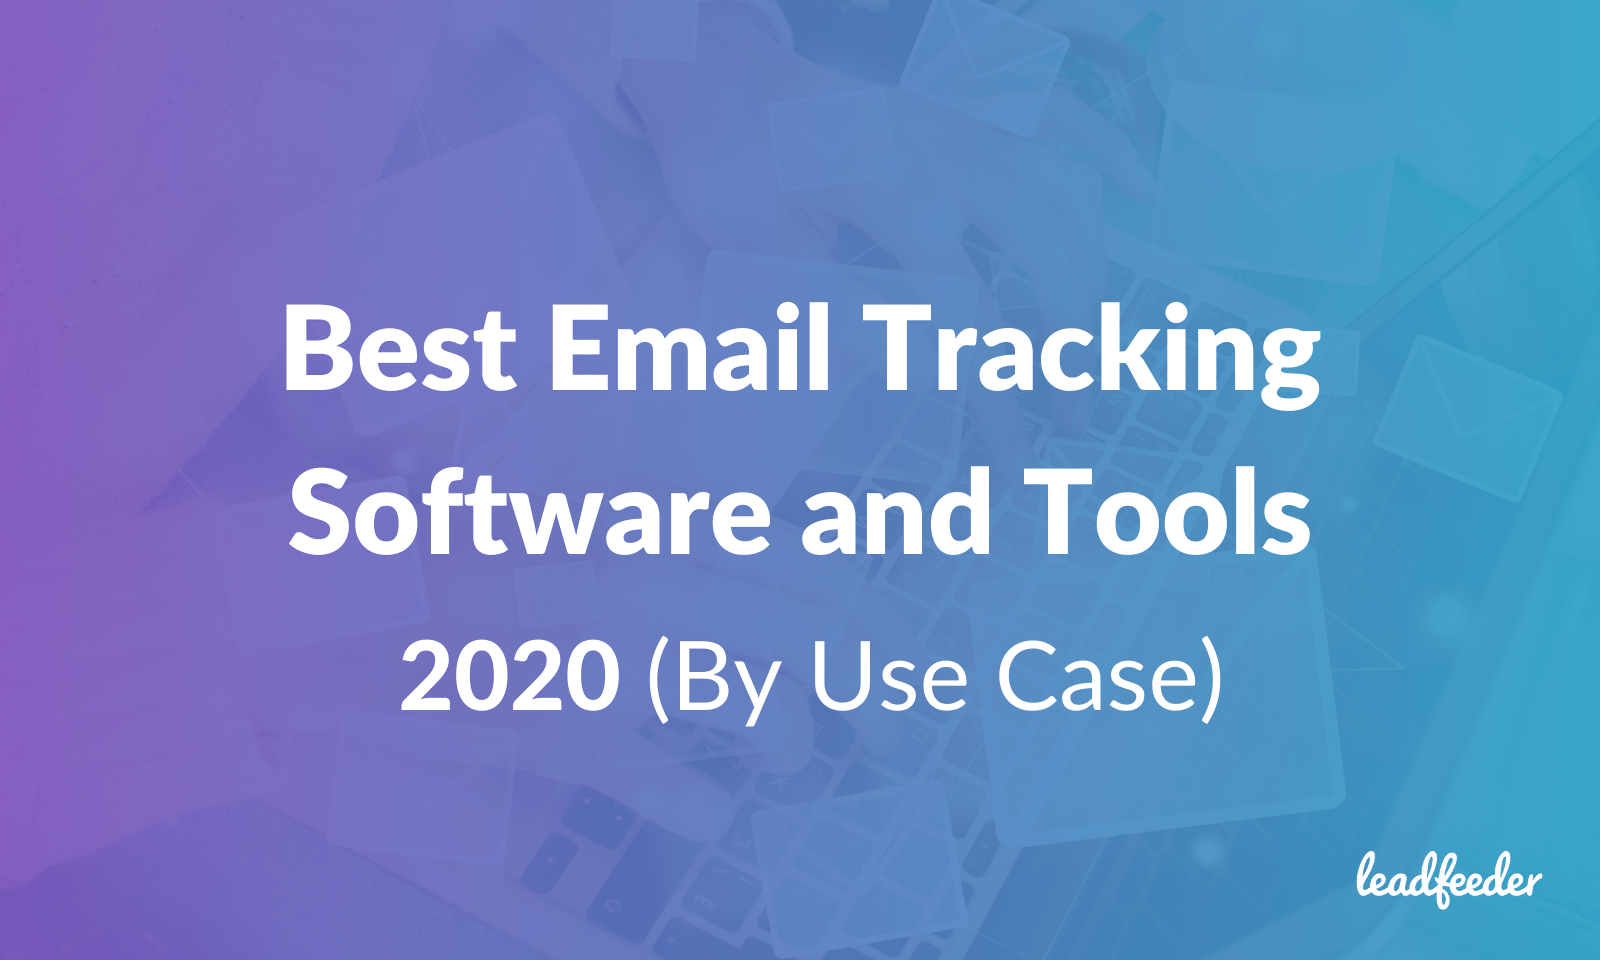 Best Email Client For Mac 2021 18 Best Email Tracking Software and Tools for 2021 (By Use Case